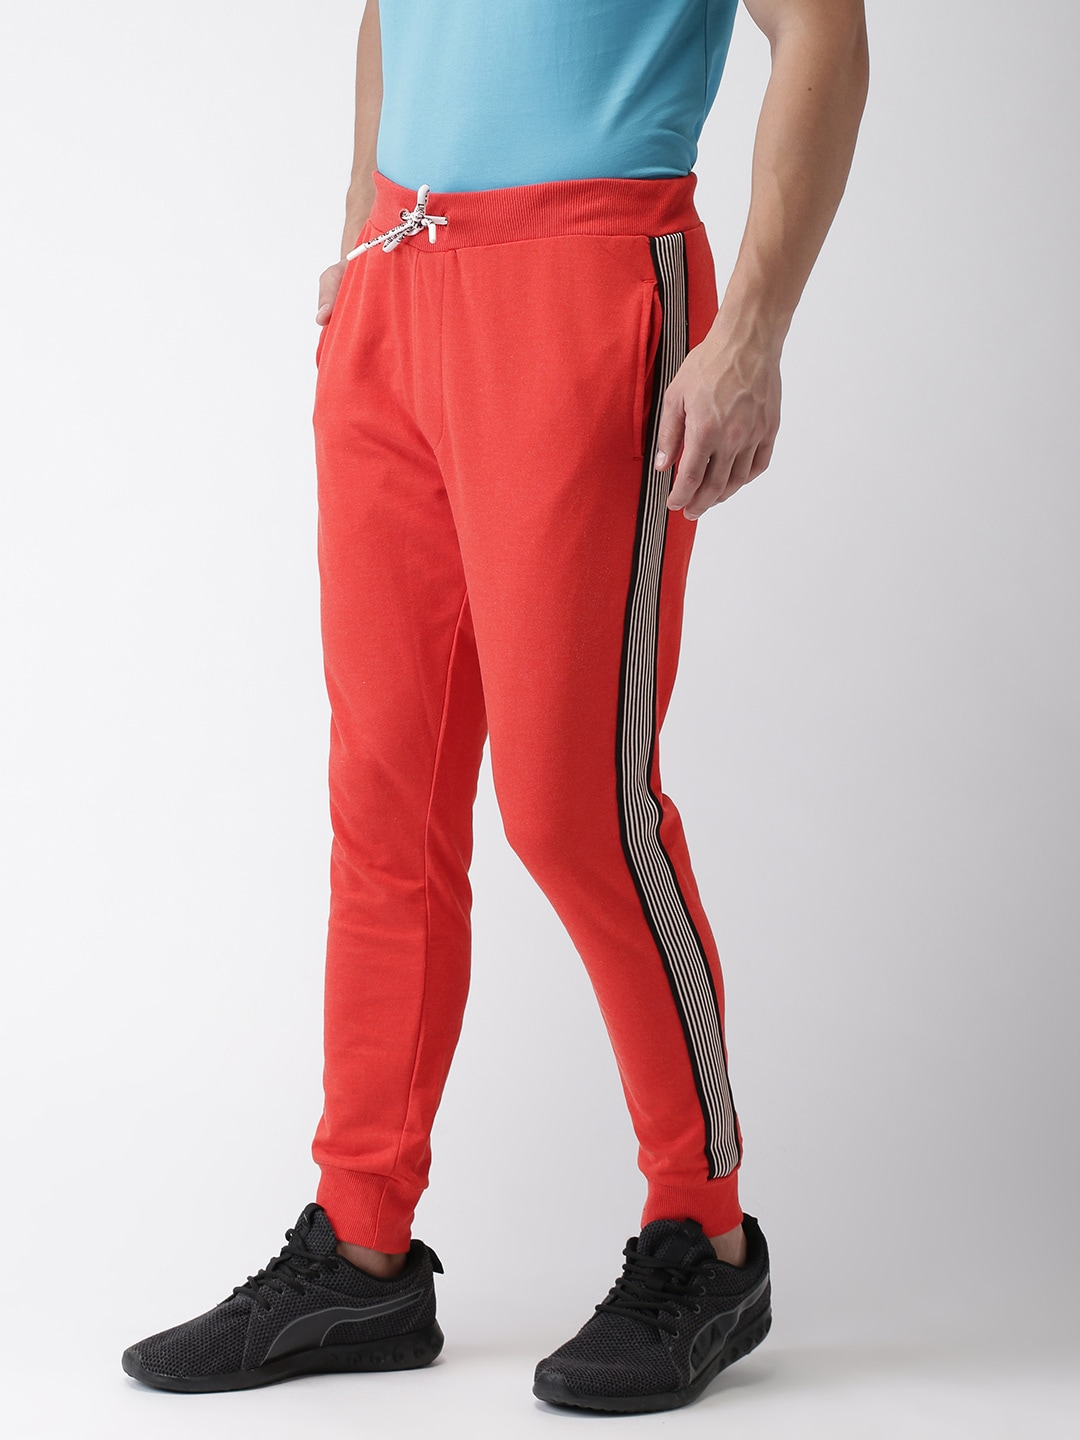 319e28240c0f Men Jackets Track Pants Football - Buy Men Jackets Track Pants Football  online in India